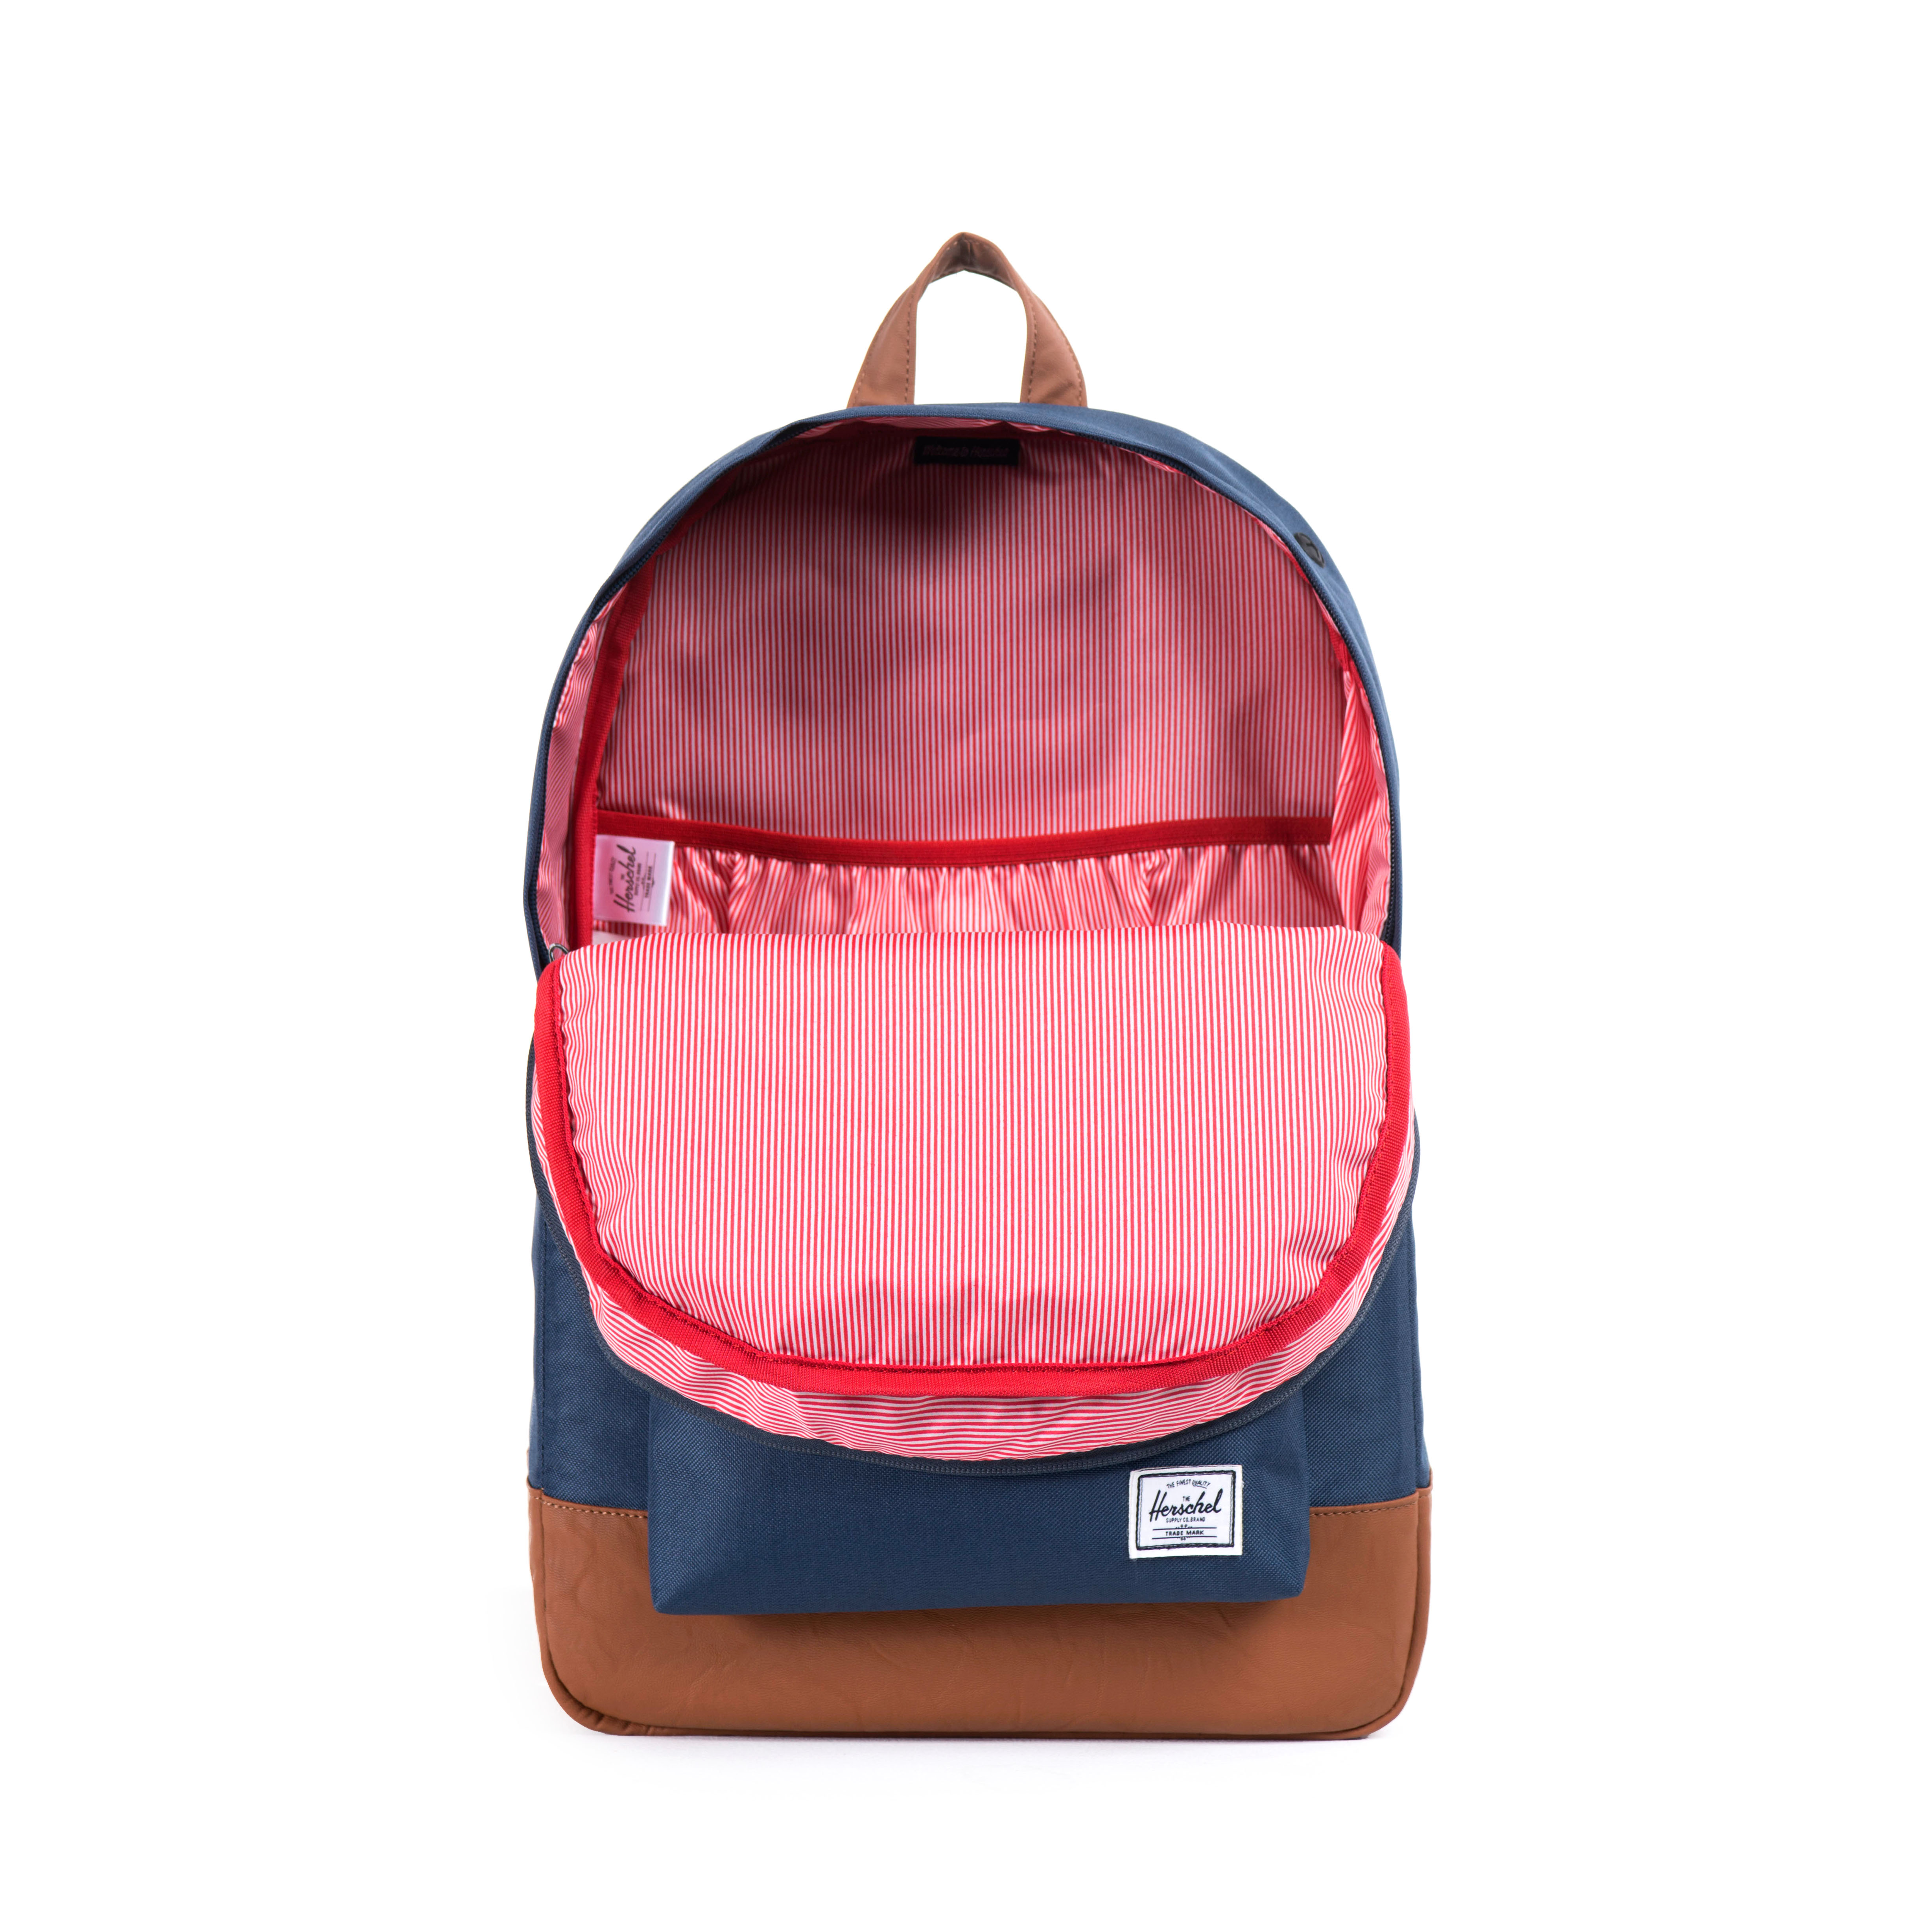 Herschel Rucksack Heritage Backpack Navy/Tan Synthetic Leather 10007-00007 F18-HT1